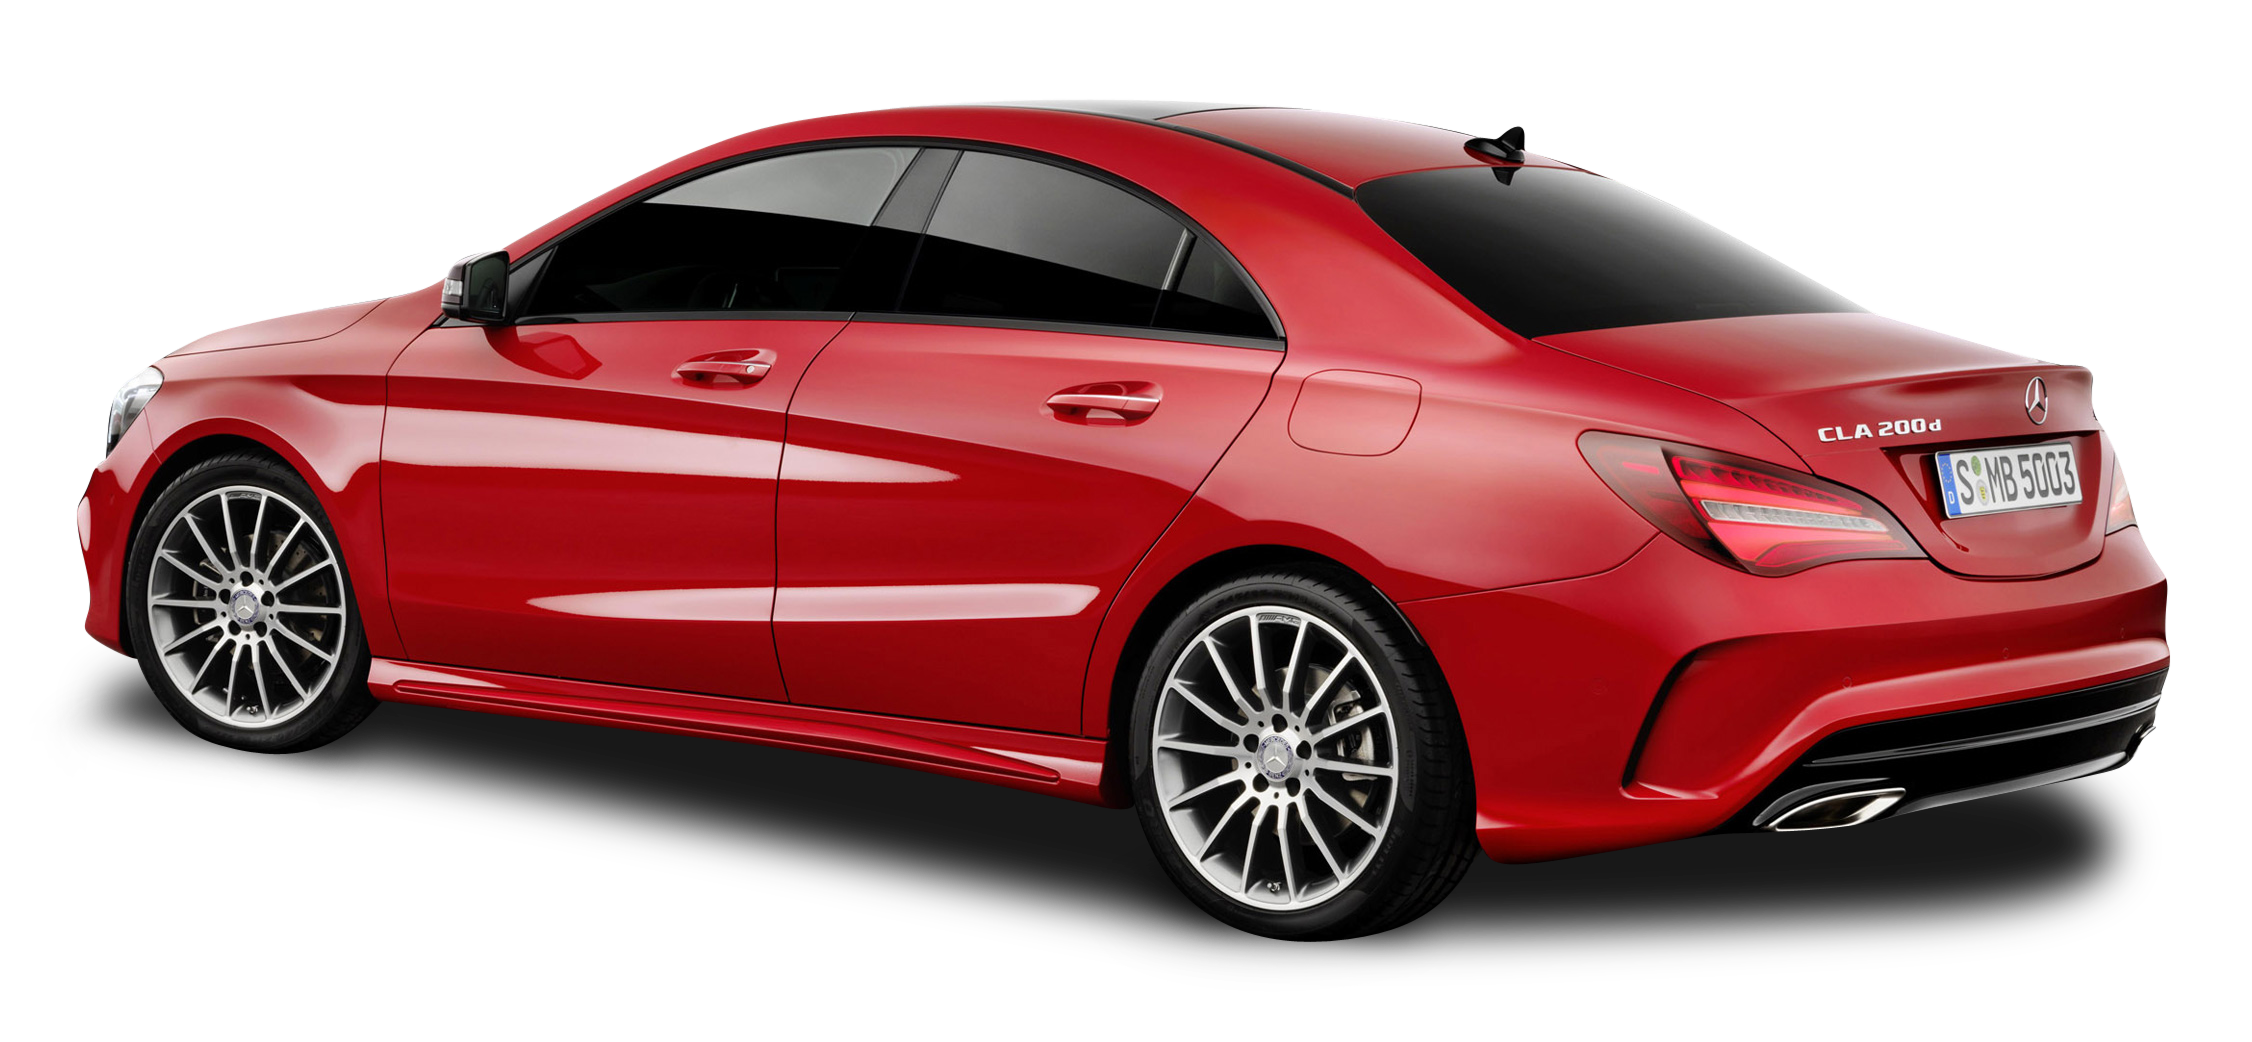 Mercedes Benz CLA Red Car PNG Image